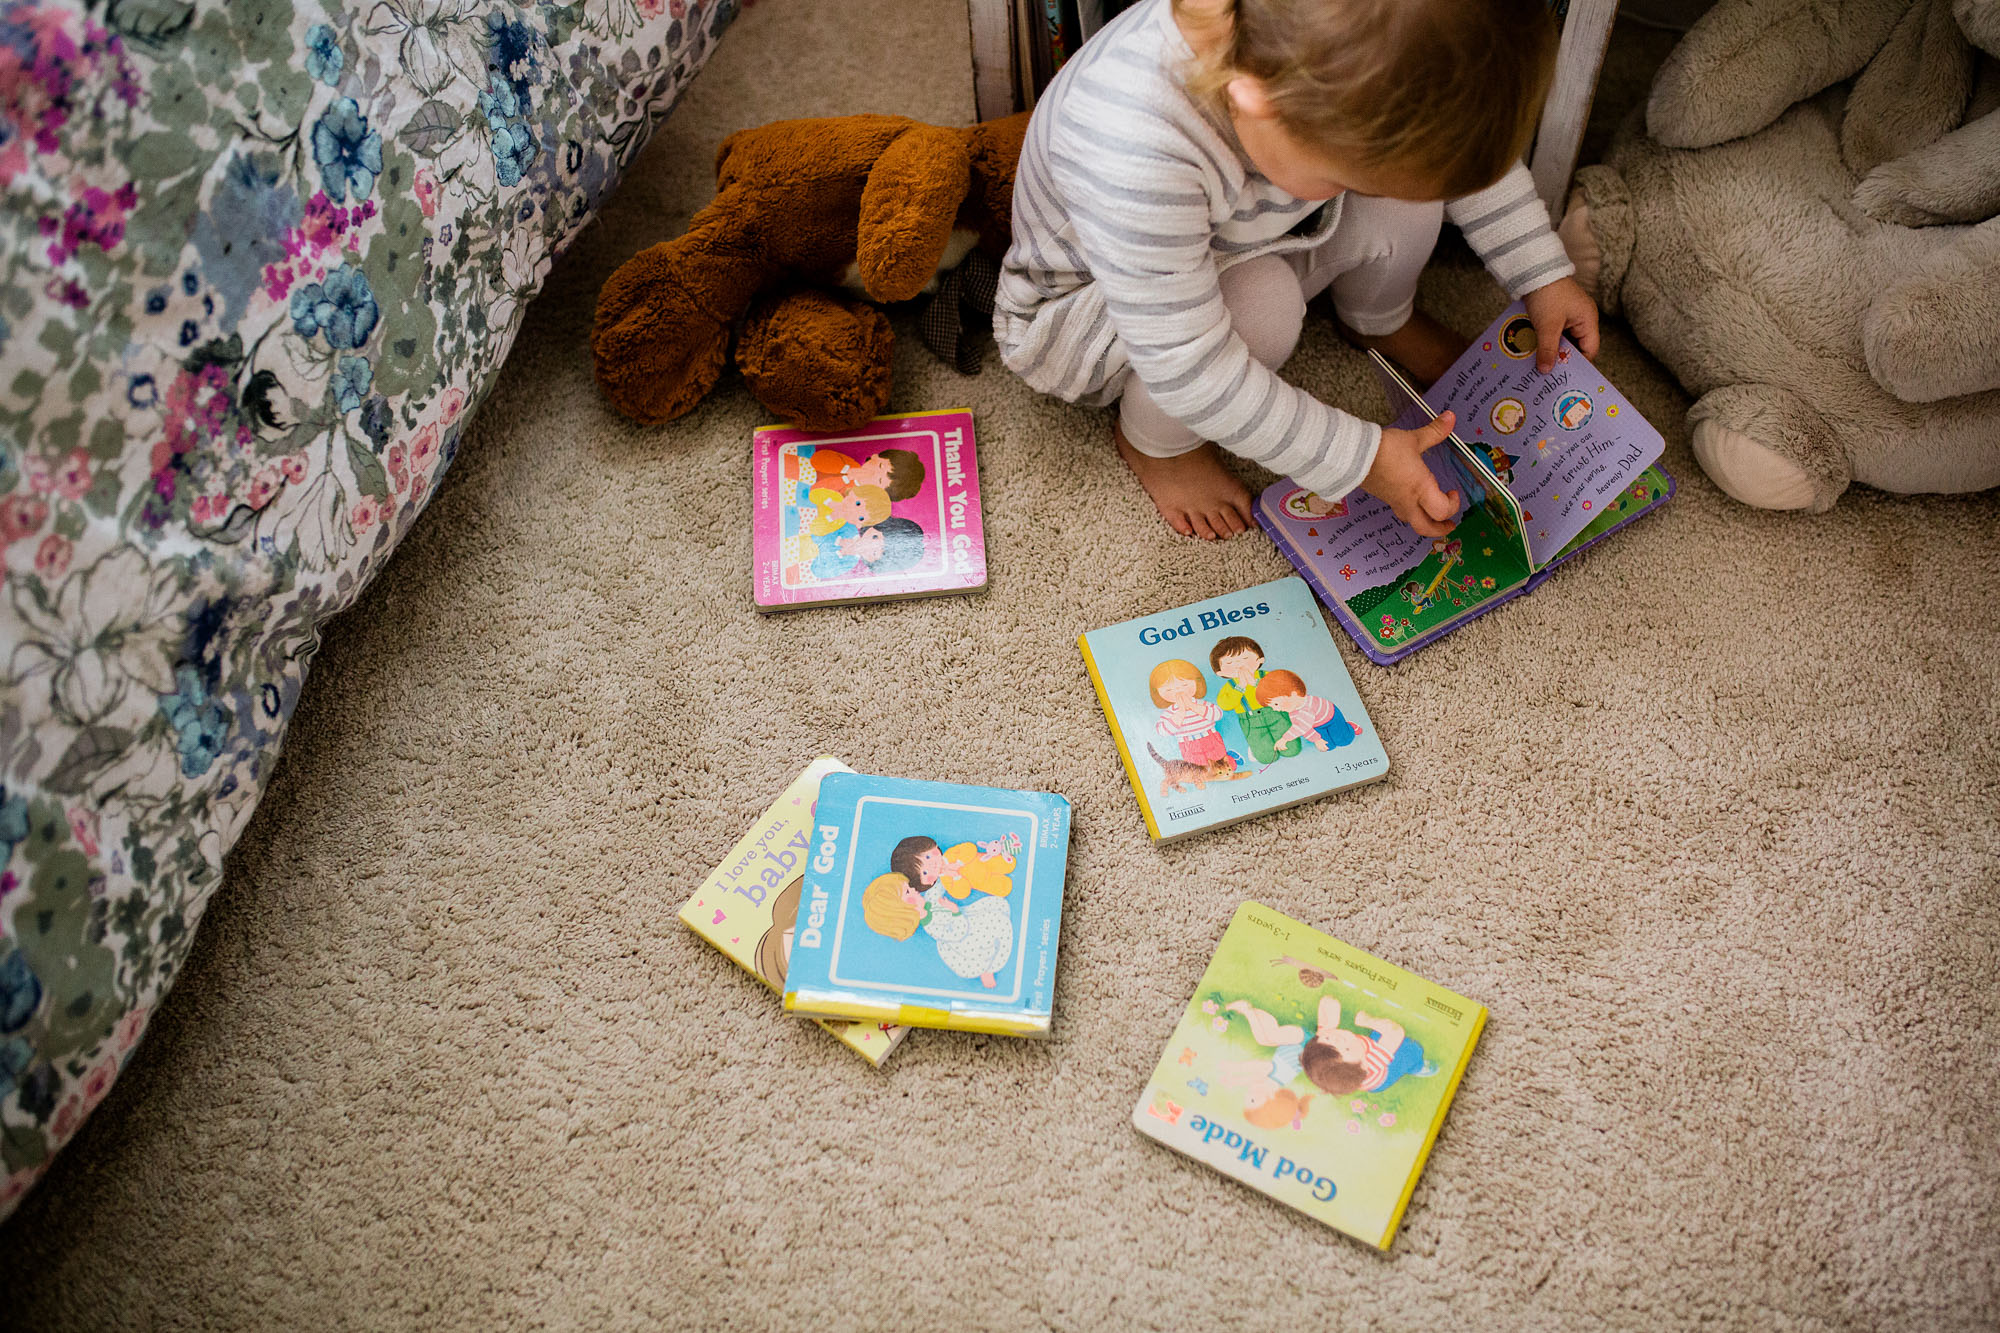 A toddler reads books in her room during a lifestyle newborn session wtih Amy Wright, a photographer based out of Sacramento, California.